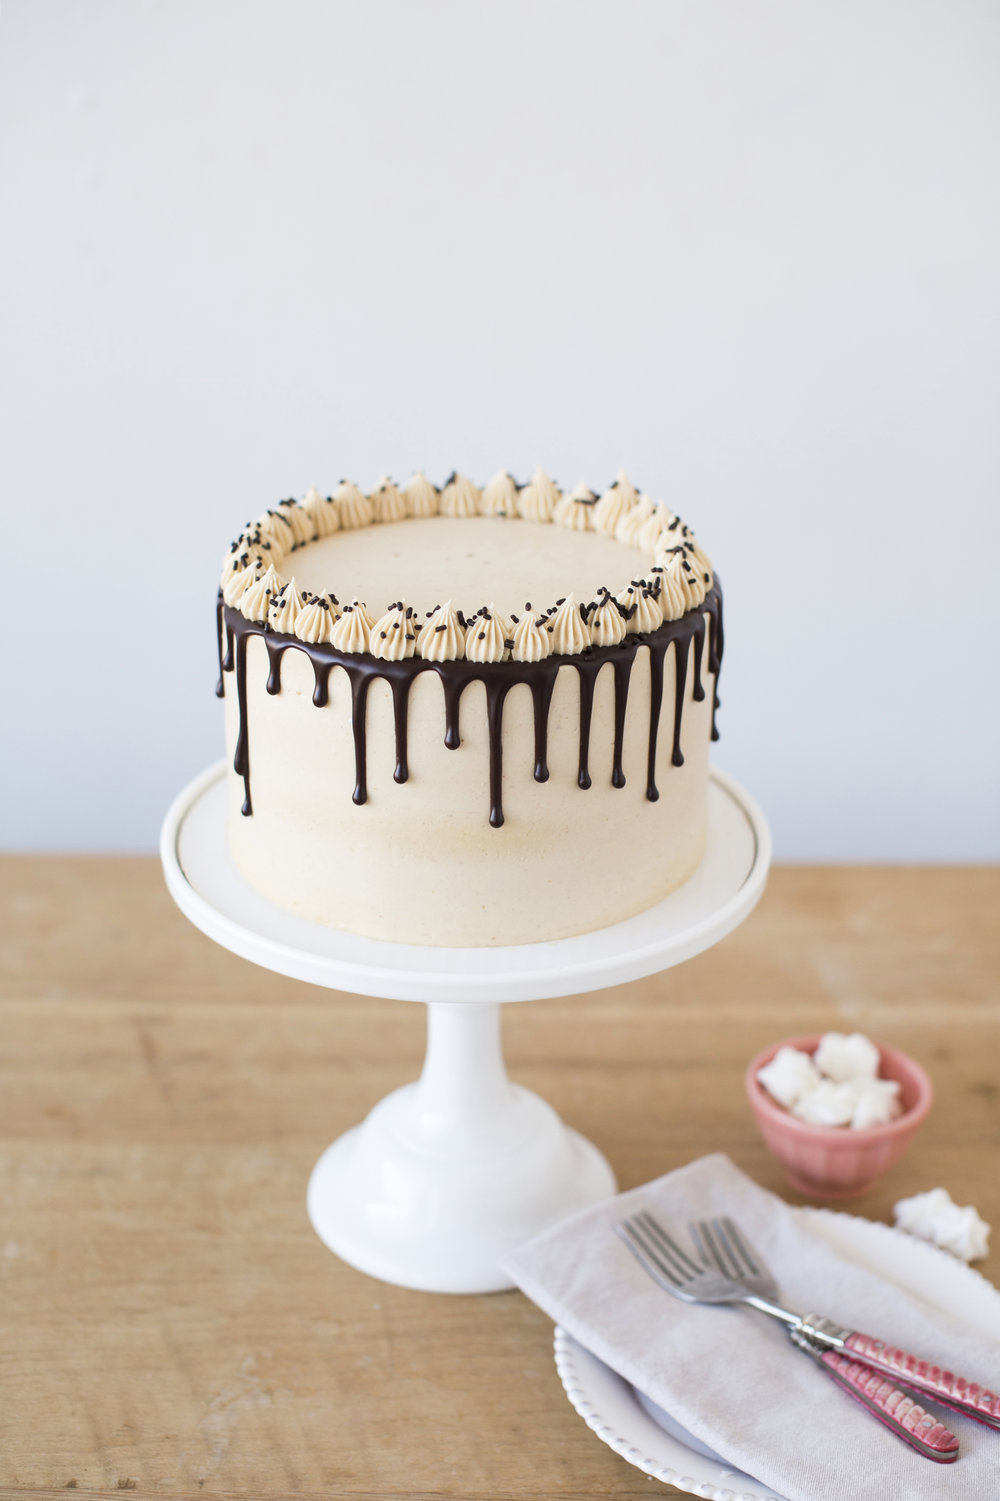 Chocolate Peanut Butter   Chocolate cake with peanut butter filling and icing.   $47